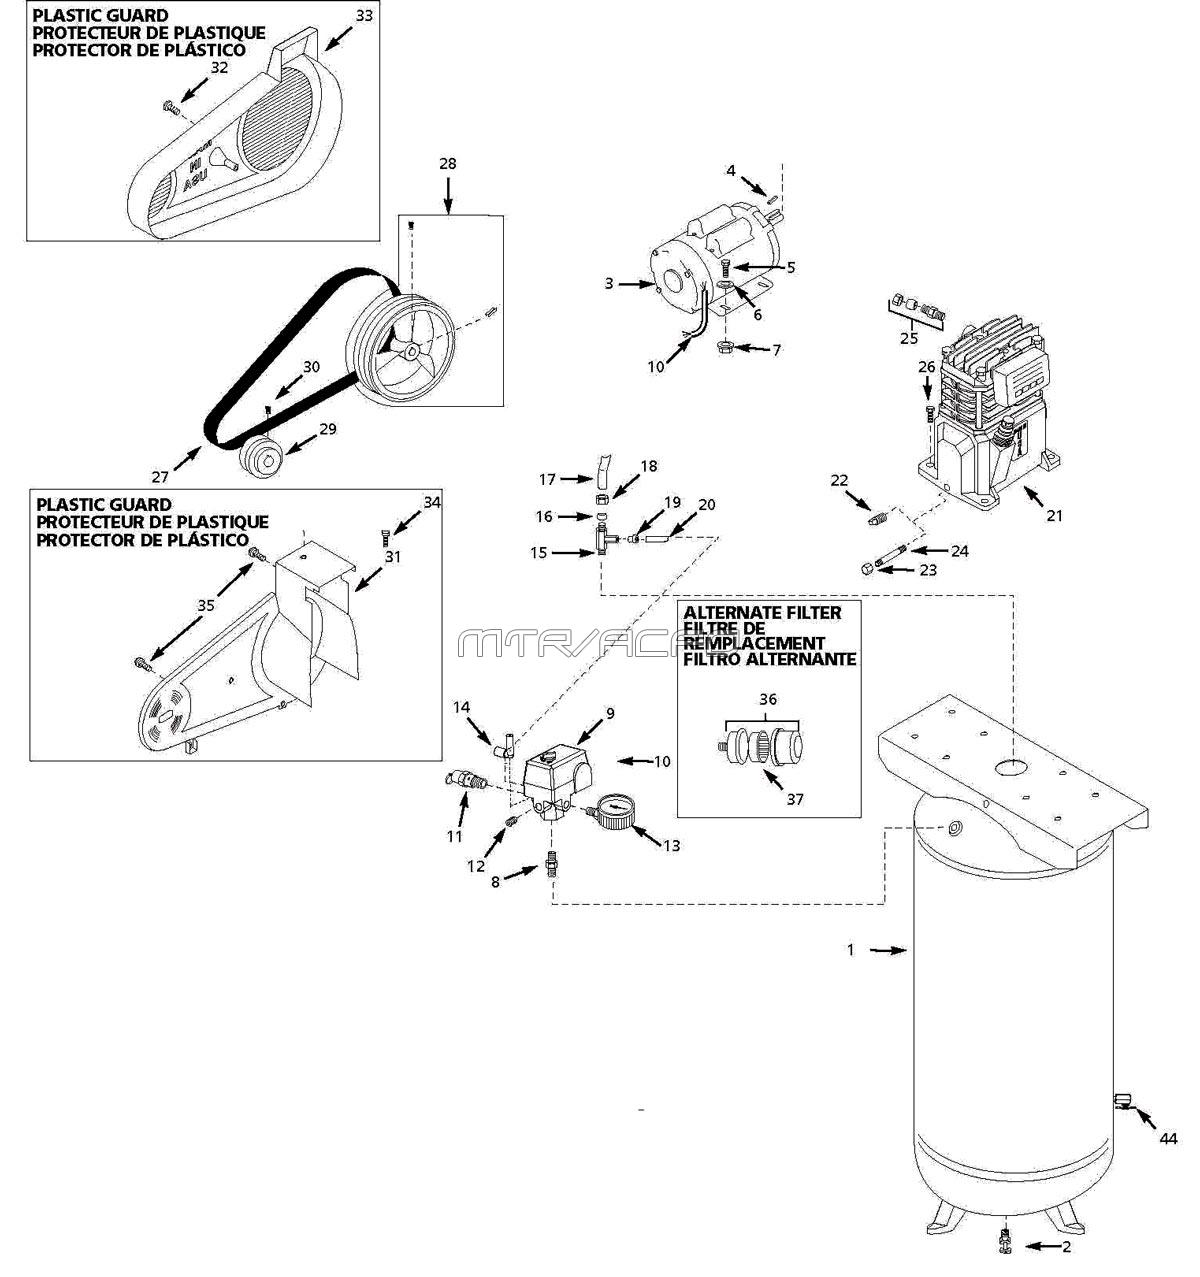 Fancy air pressor t30 wiring diagram image collection wiring